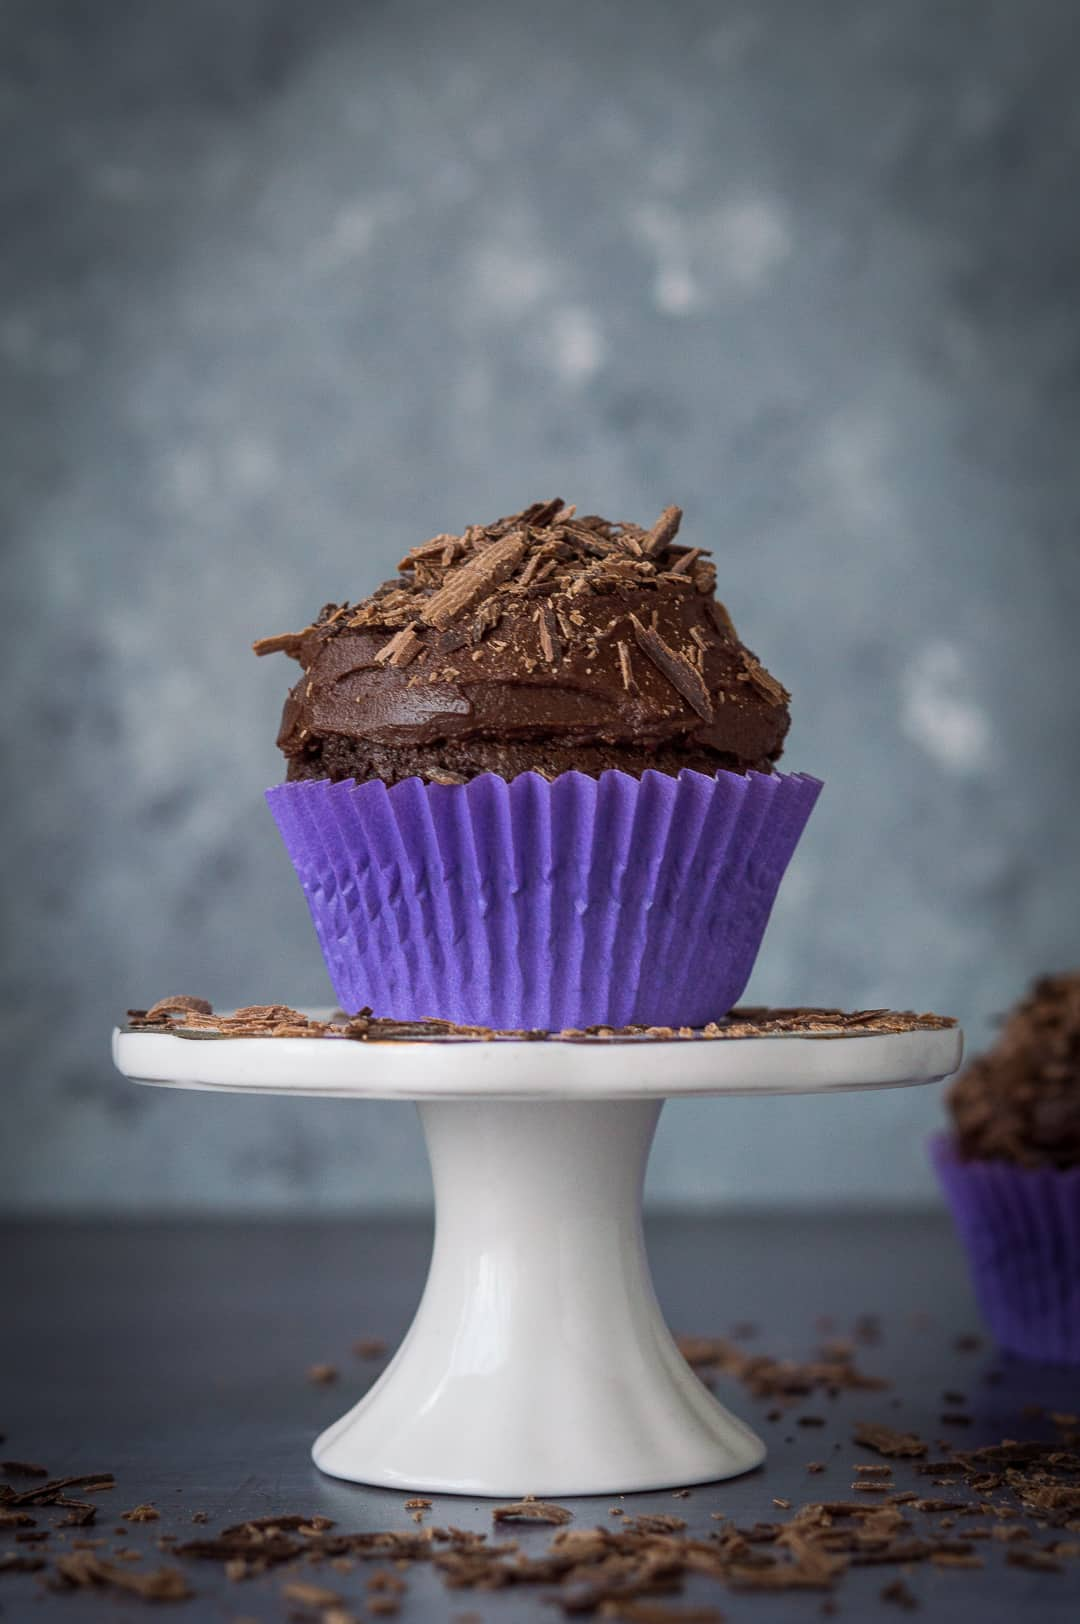 A vegan chocolate cupcake on top of a mini cake stand scattered with chocolate shavings.